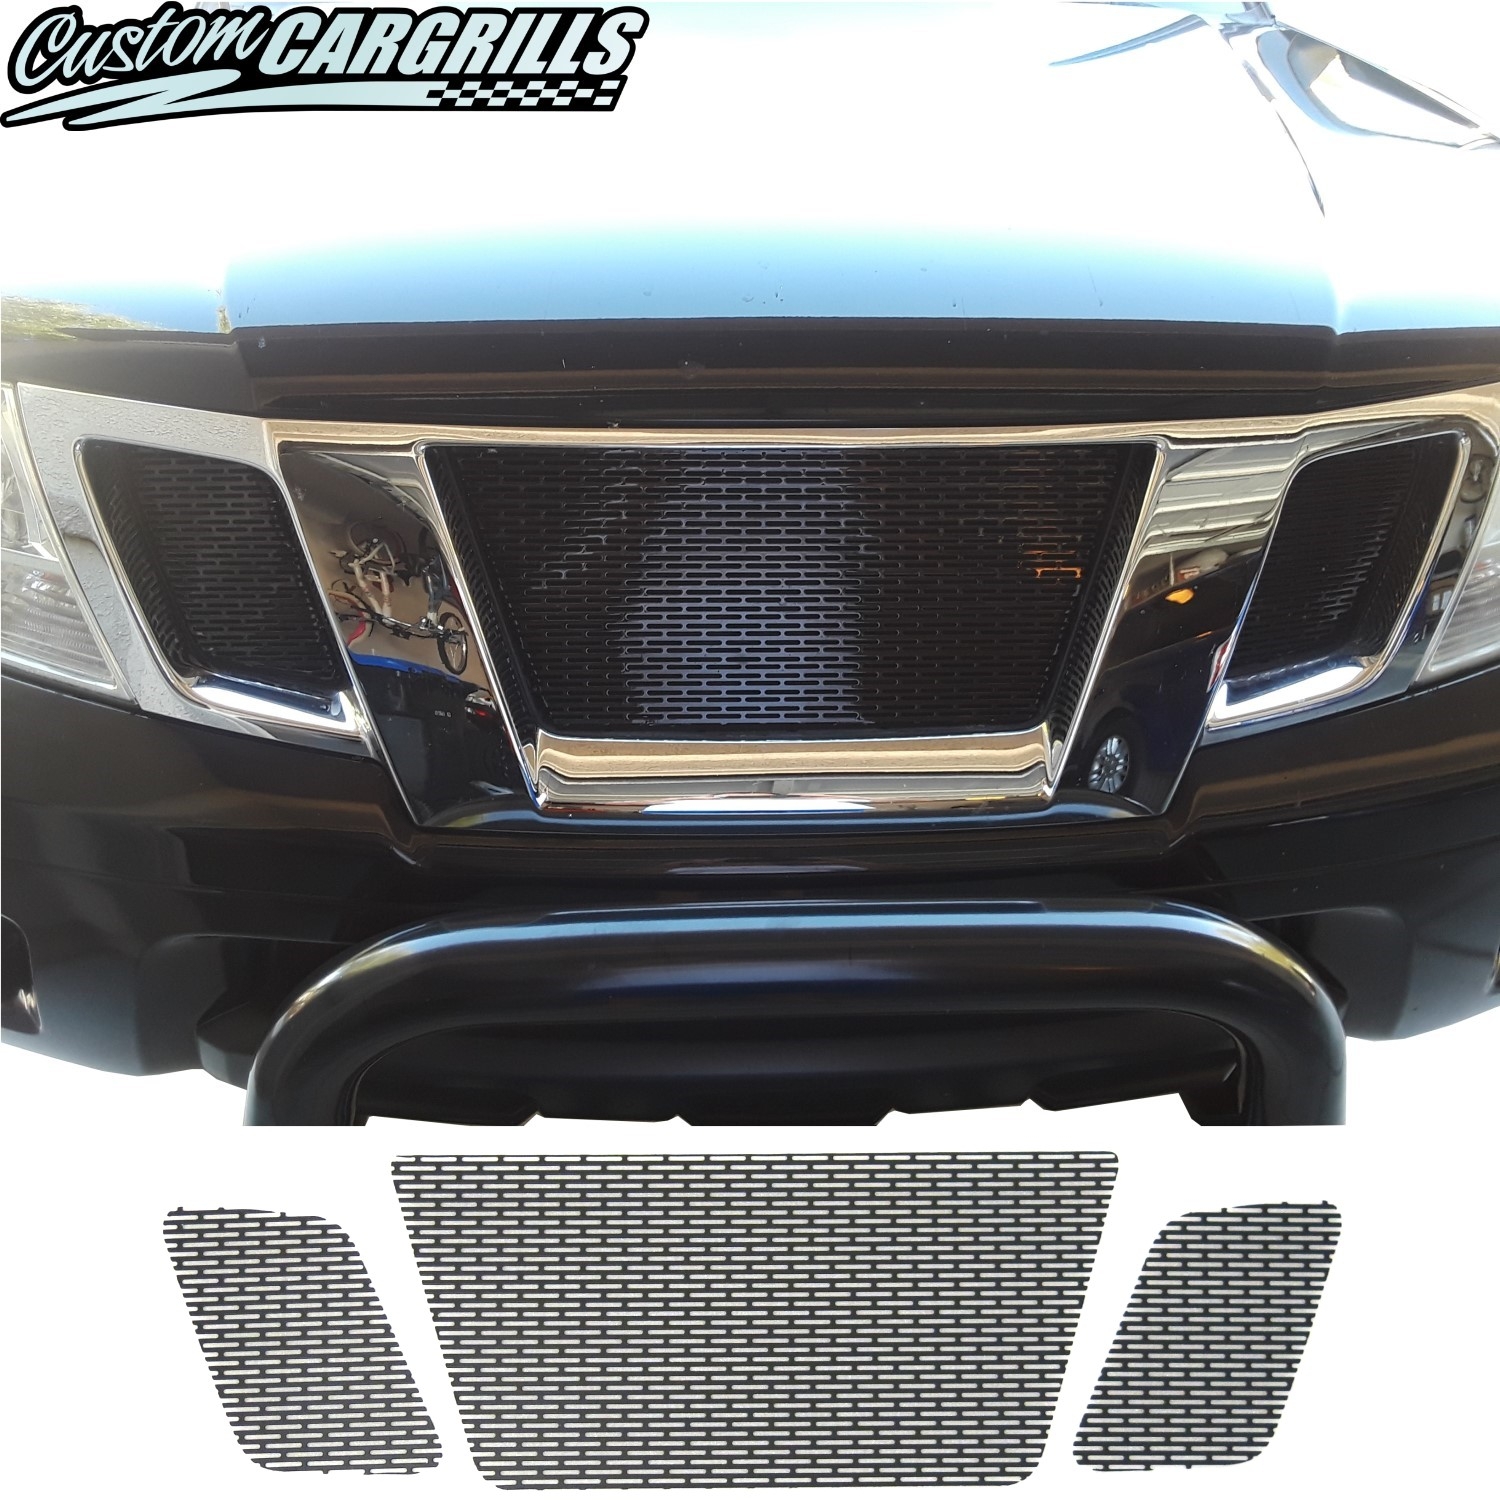 2009 - 2019 Nissan Frontier Mesh Grill Set